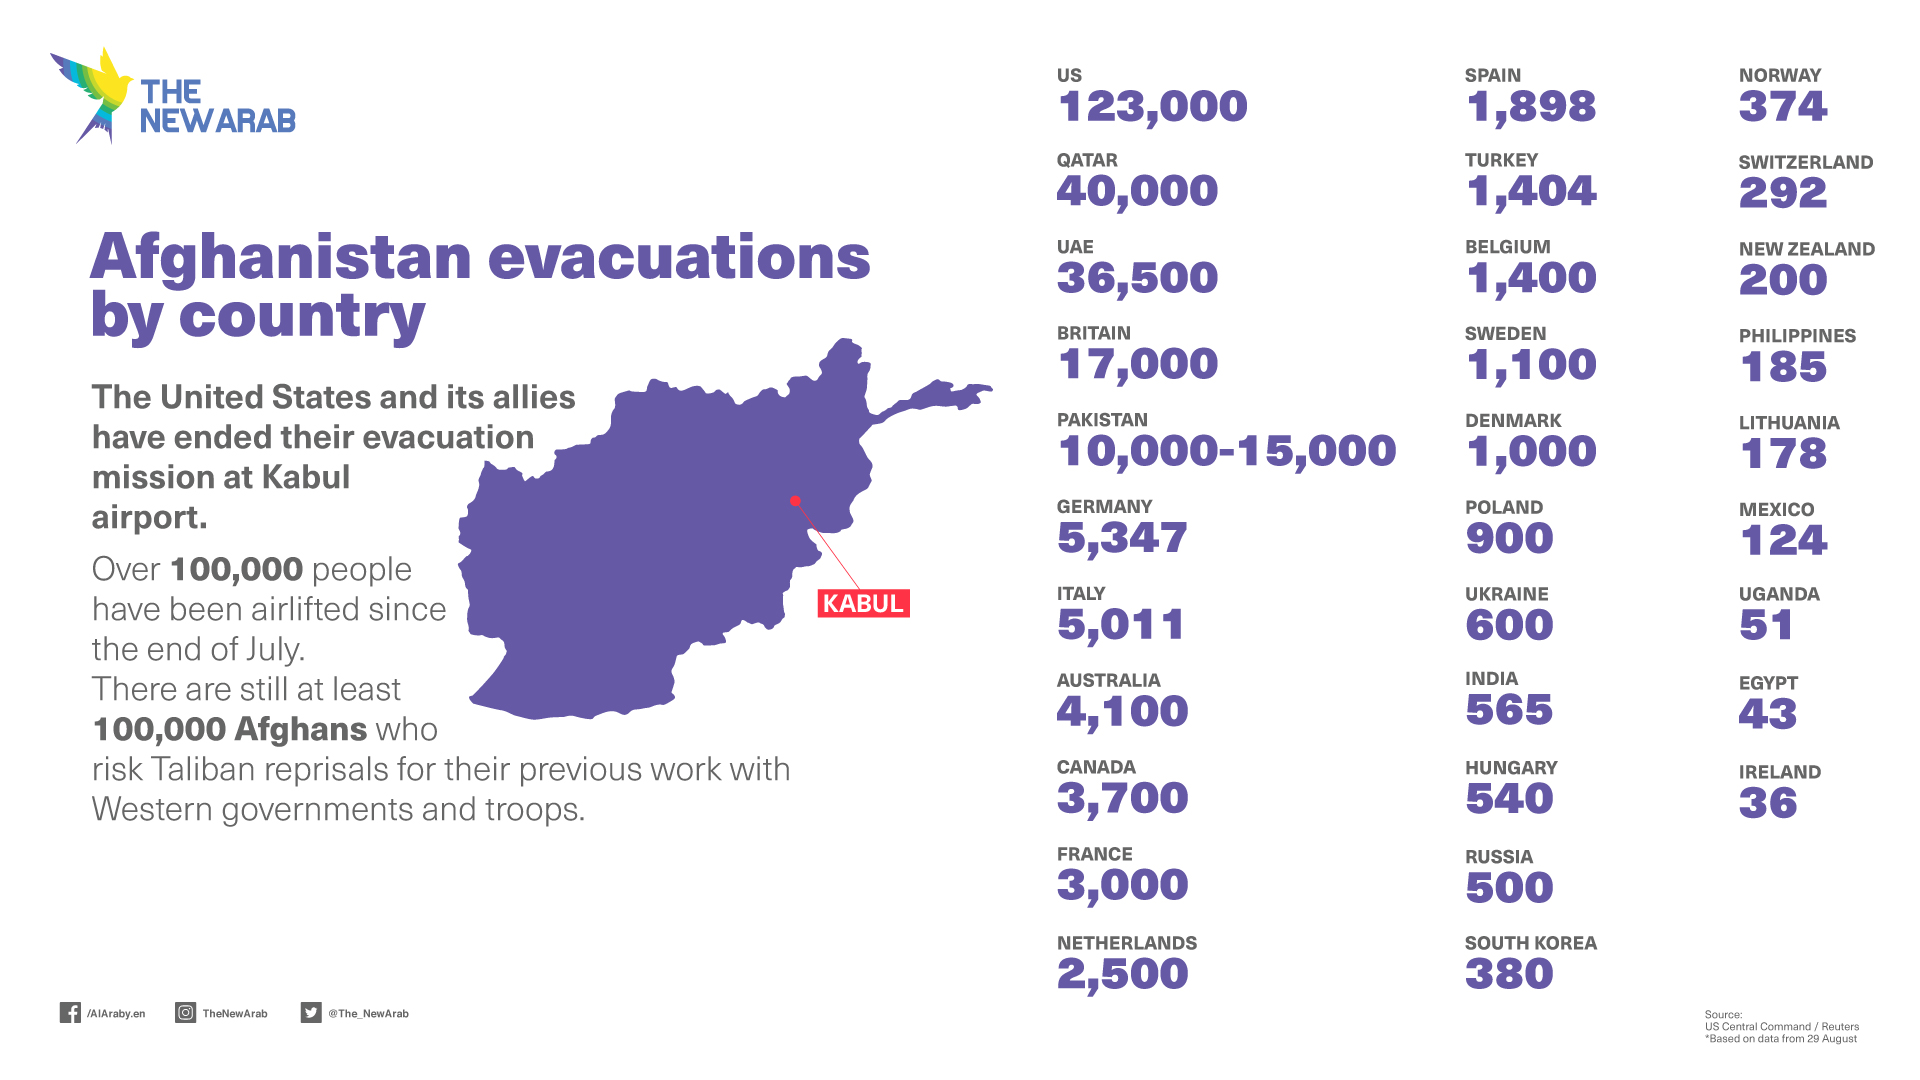 Afghanistan evacuations by country